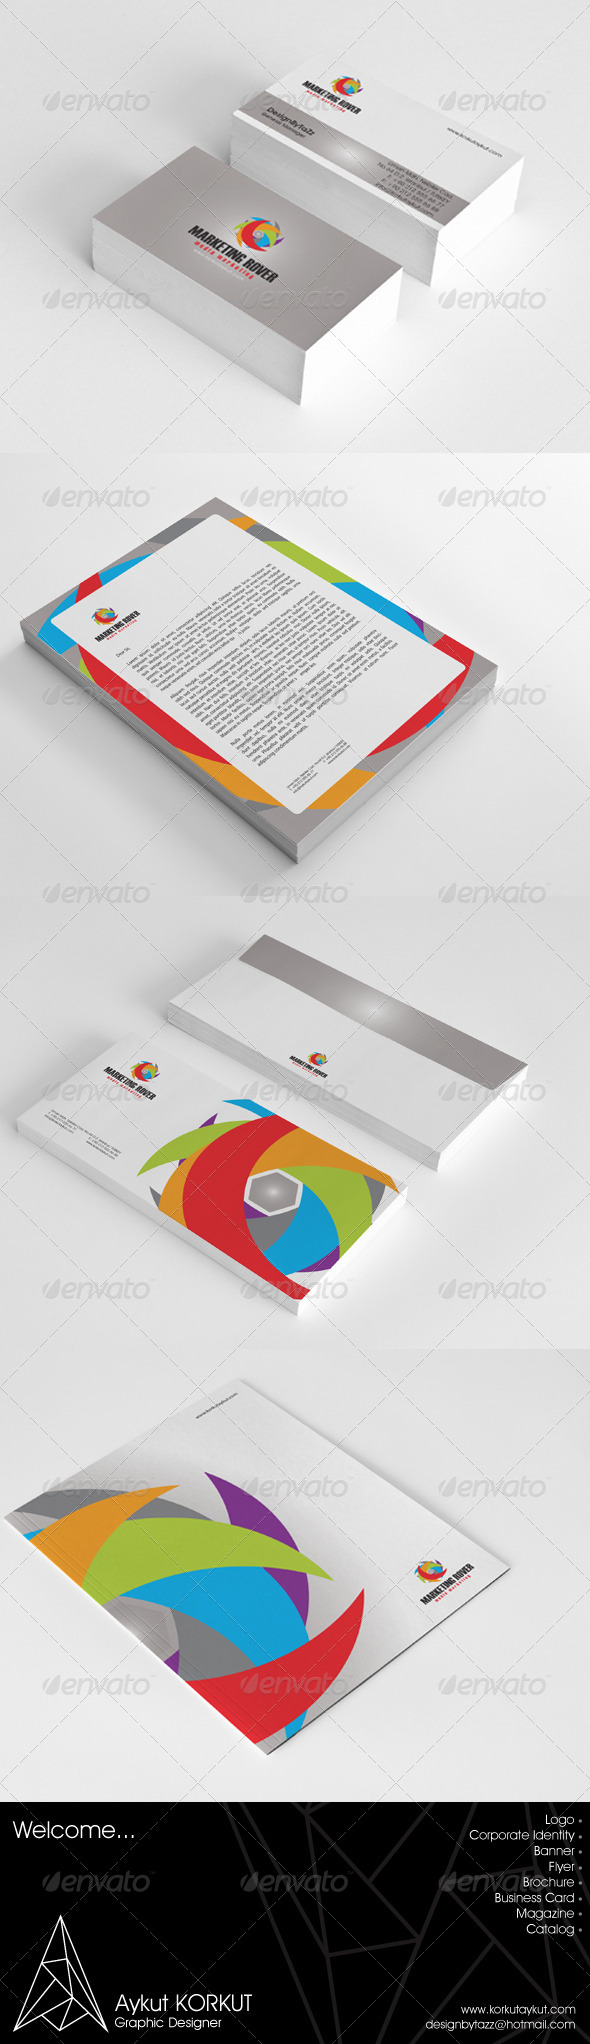 Marketing Corporate Identity Package - Stationery Print Templates